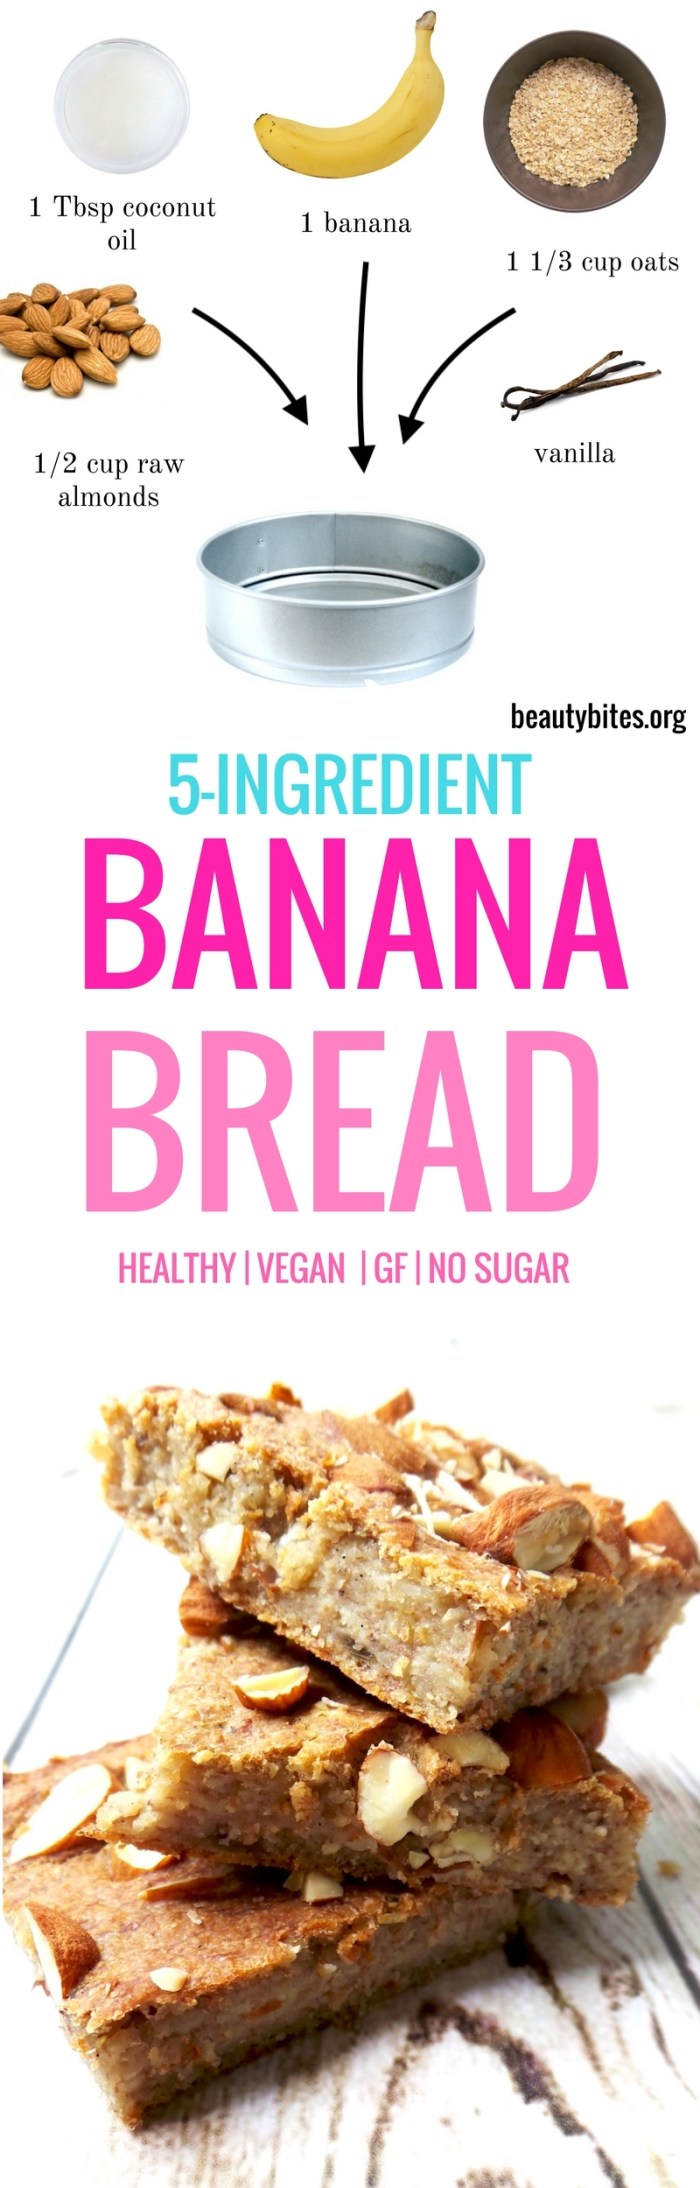 Healthy banana bread - vegan and flourless. This healthy snack is easy & just 5 ingredients to make, it's also good for a healthy meal prep as it keeps well in the fridge for up to 5 days. Healthy vegan breakfast | Healthy vegan banana bread | High-Fiber Breakfast Recipe #healthyrecipe